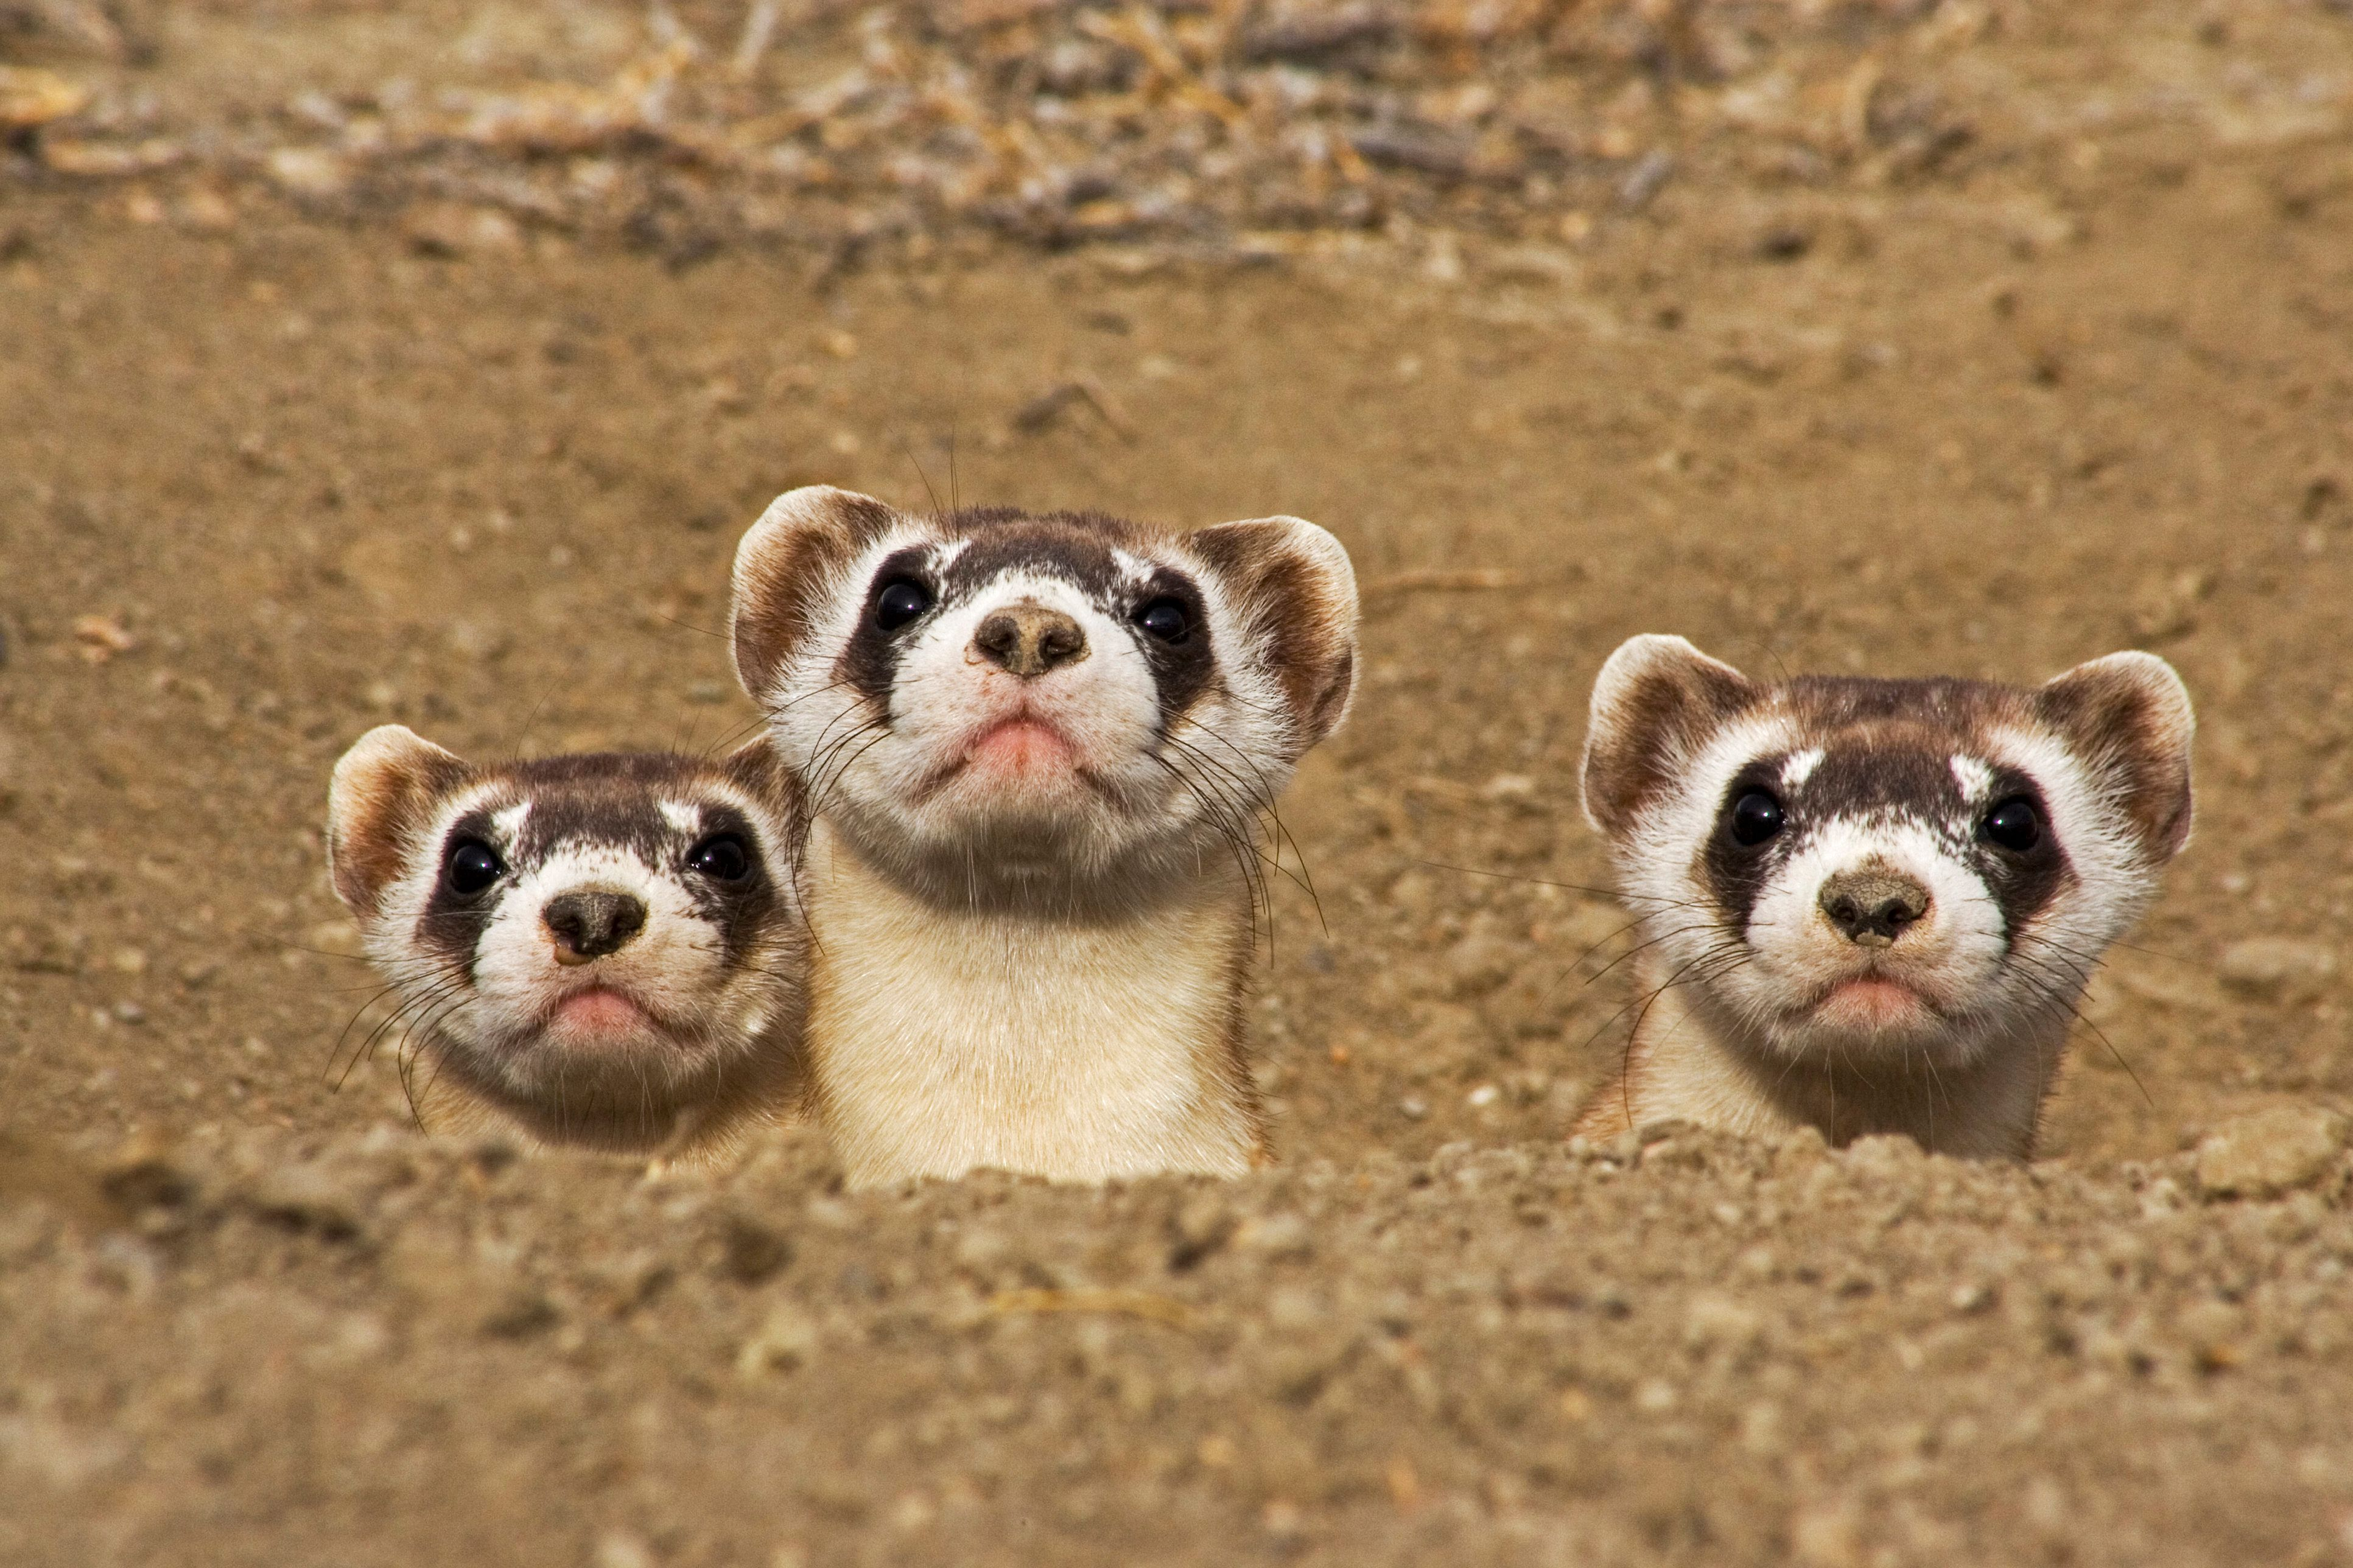 Once thought to be extinct, a remnant population of the endangered black-footed ferret was discovered, which started a reintr